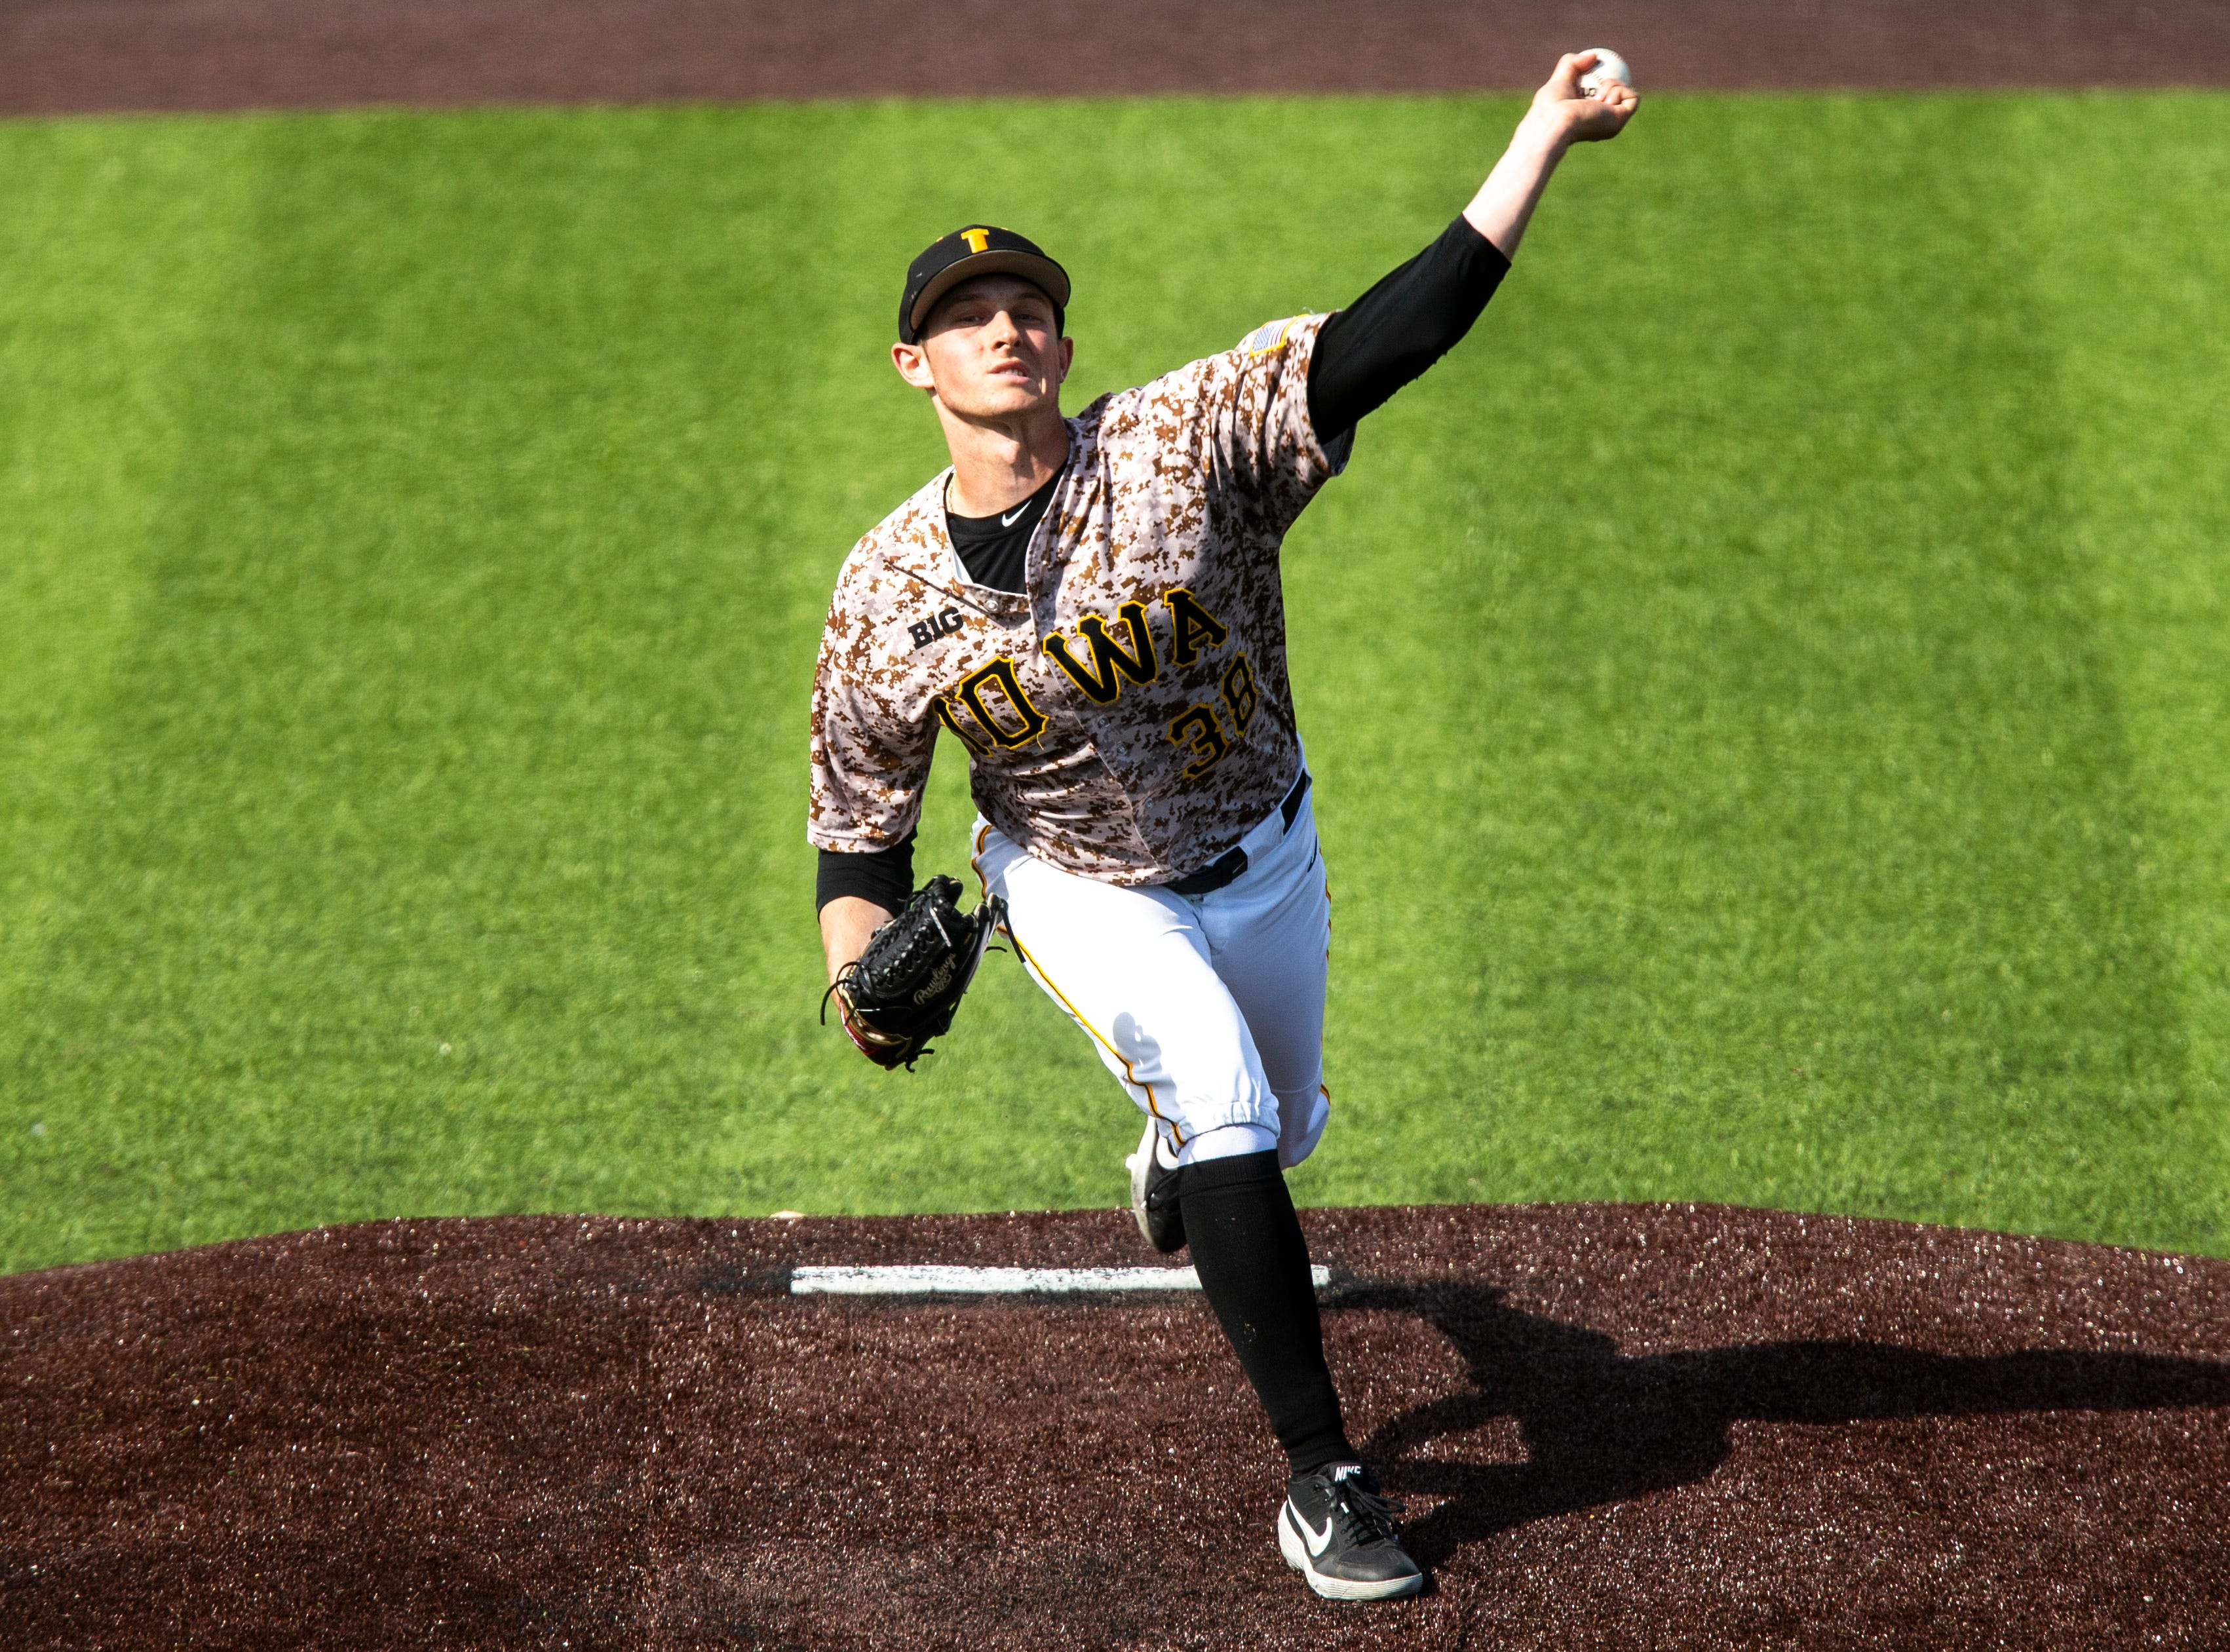 Iowa's Trenton Wallace (38) delivers a pitch during a NCAA non conference baseball game, Sunday, May 5, 2019, at Duane Banks Field in Iowa City, Iowa.